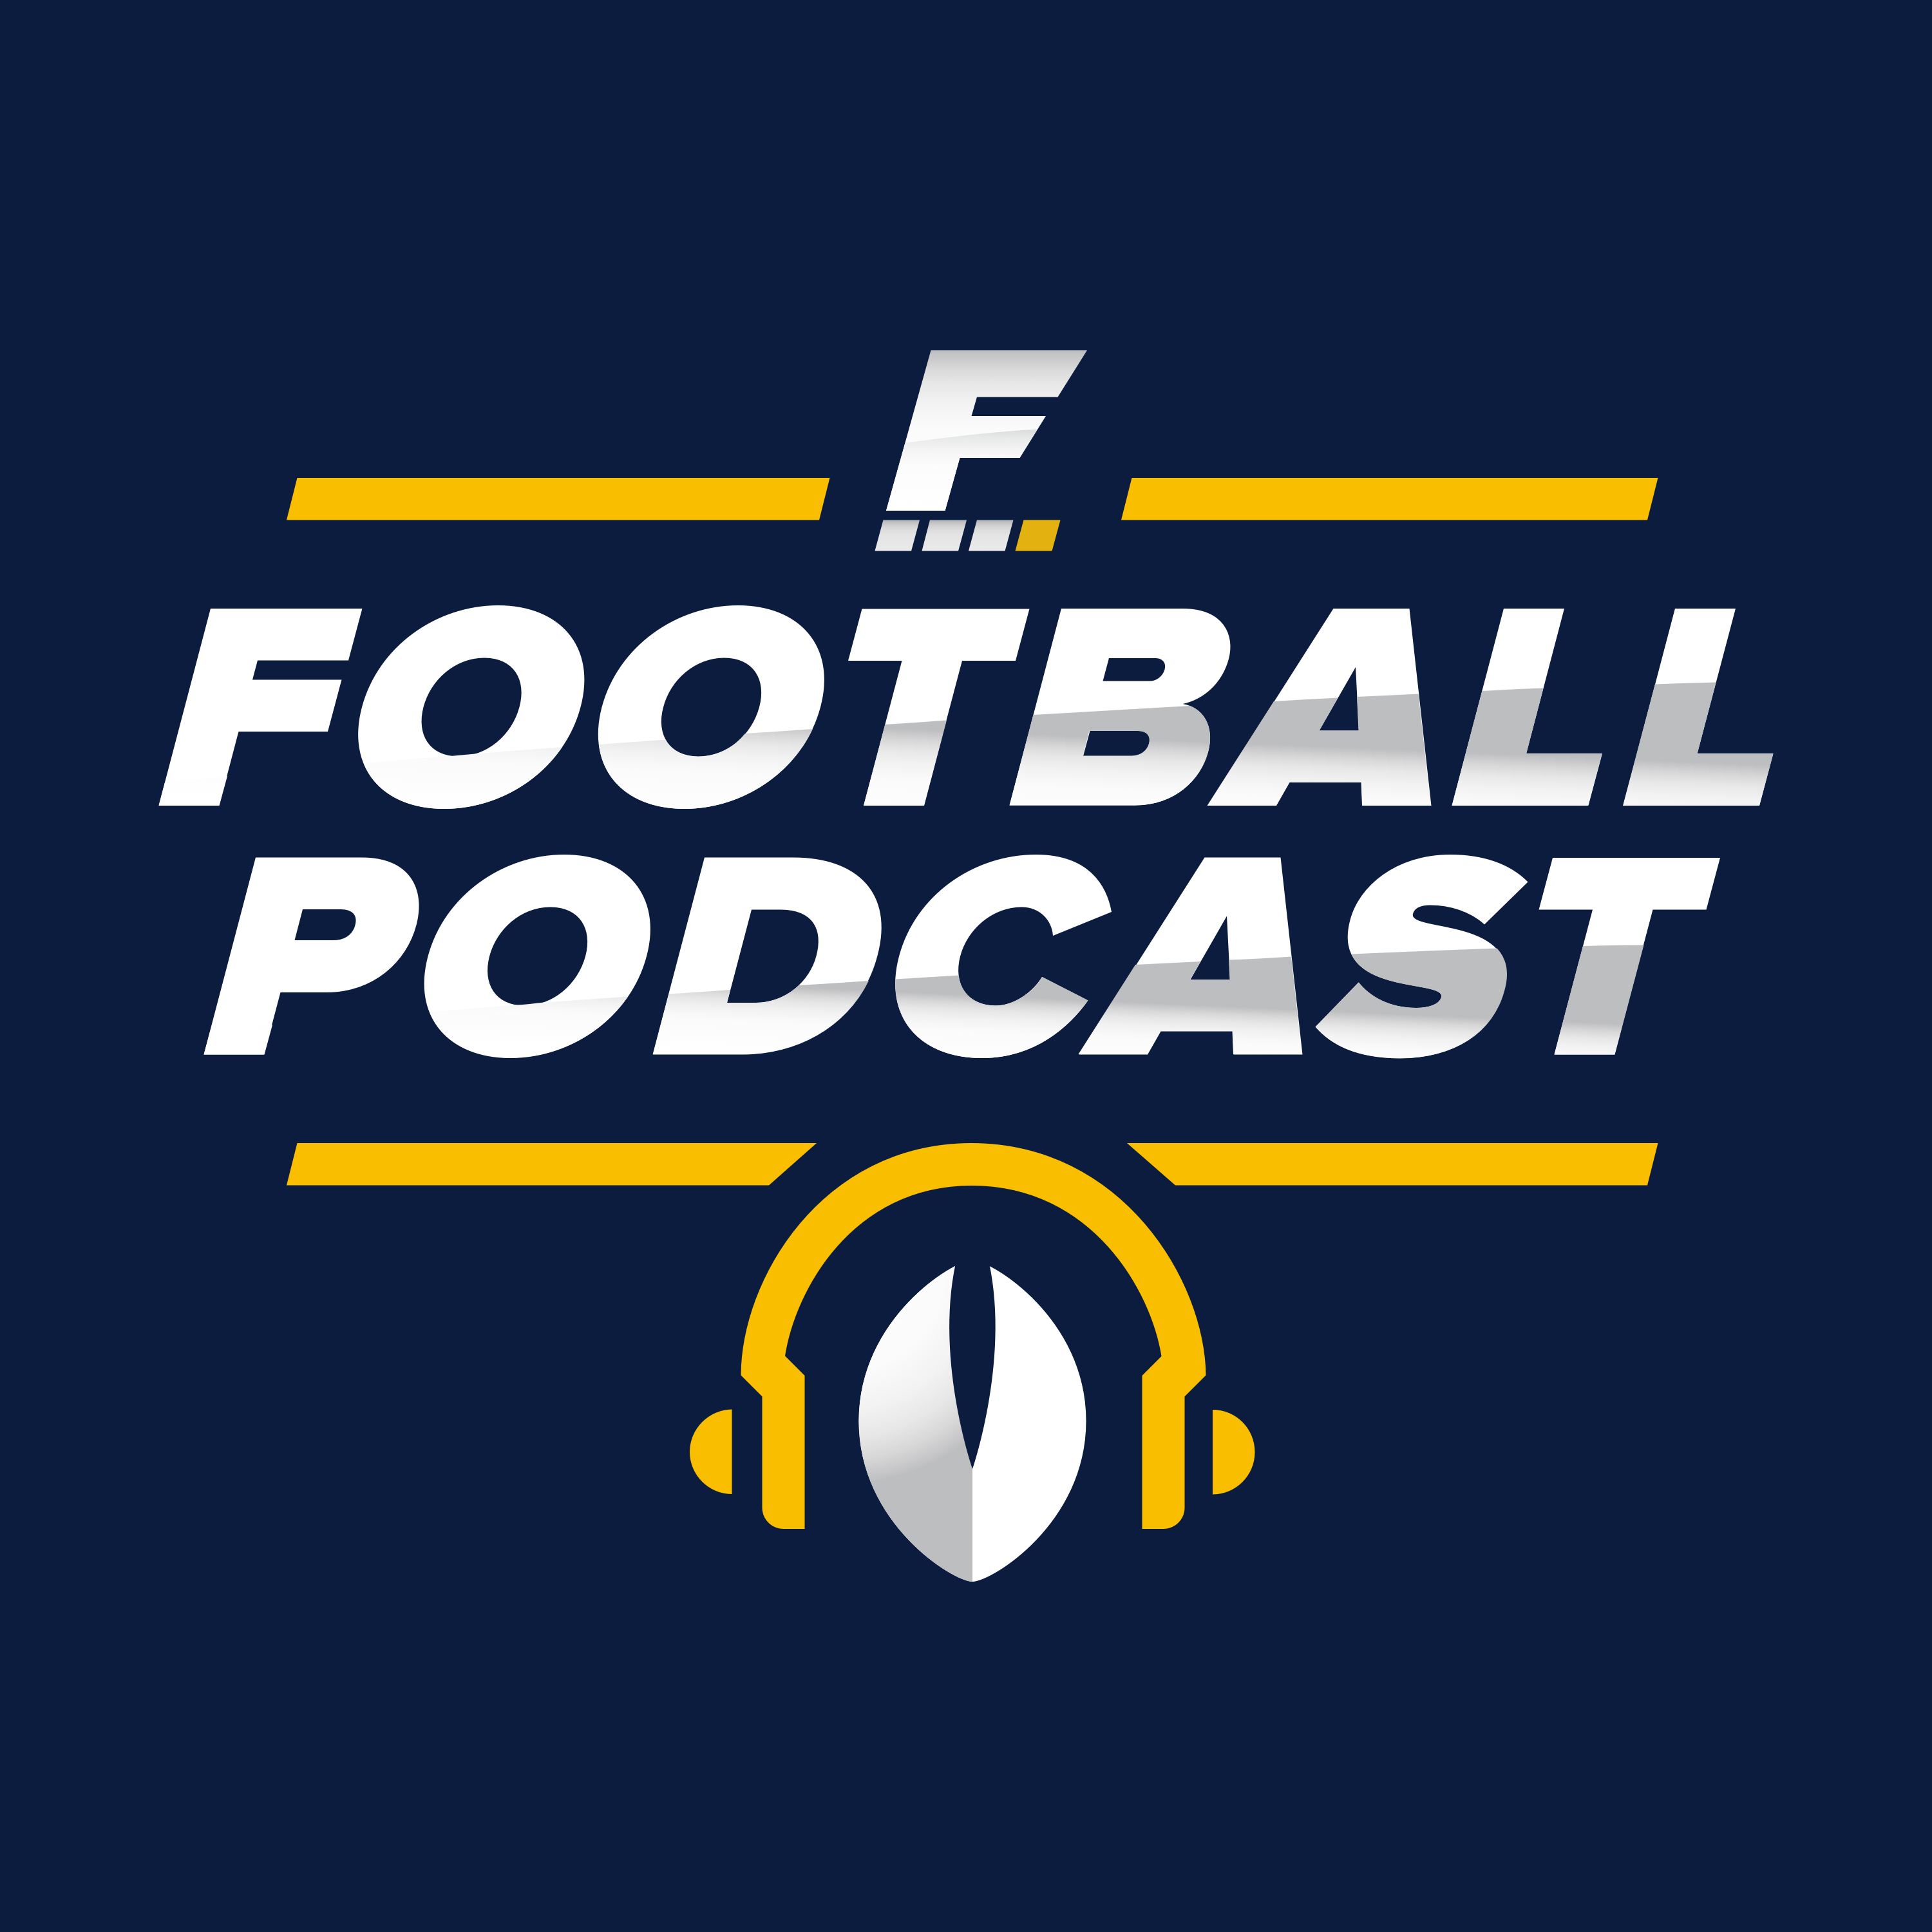 FantasyPros - Fantasy Football Podcast